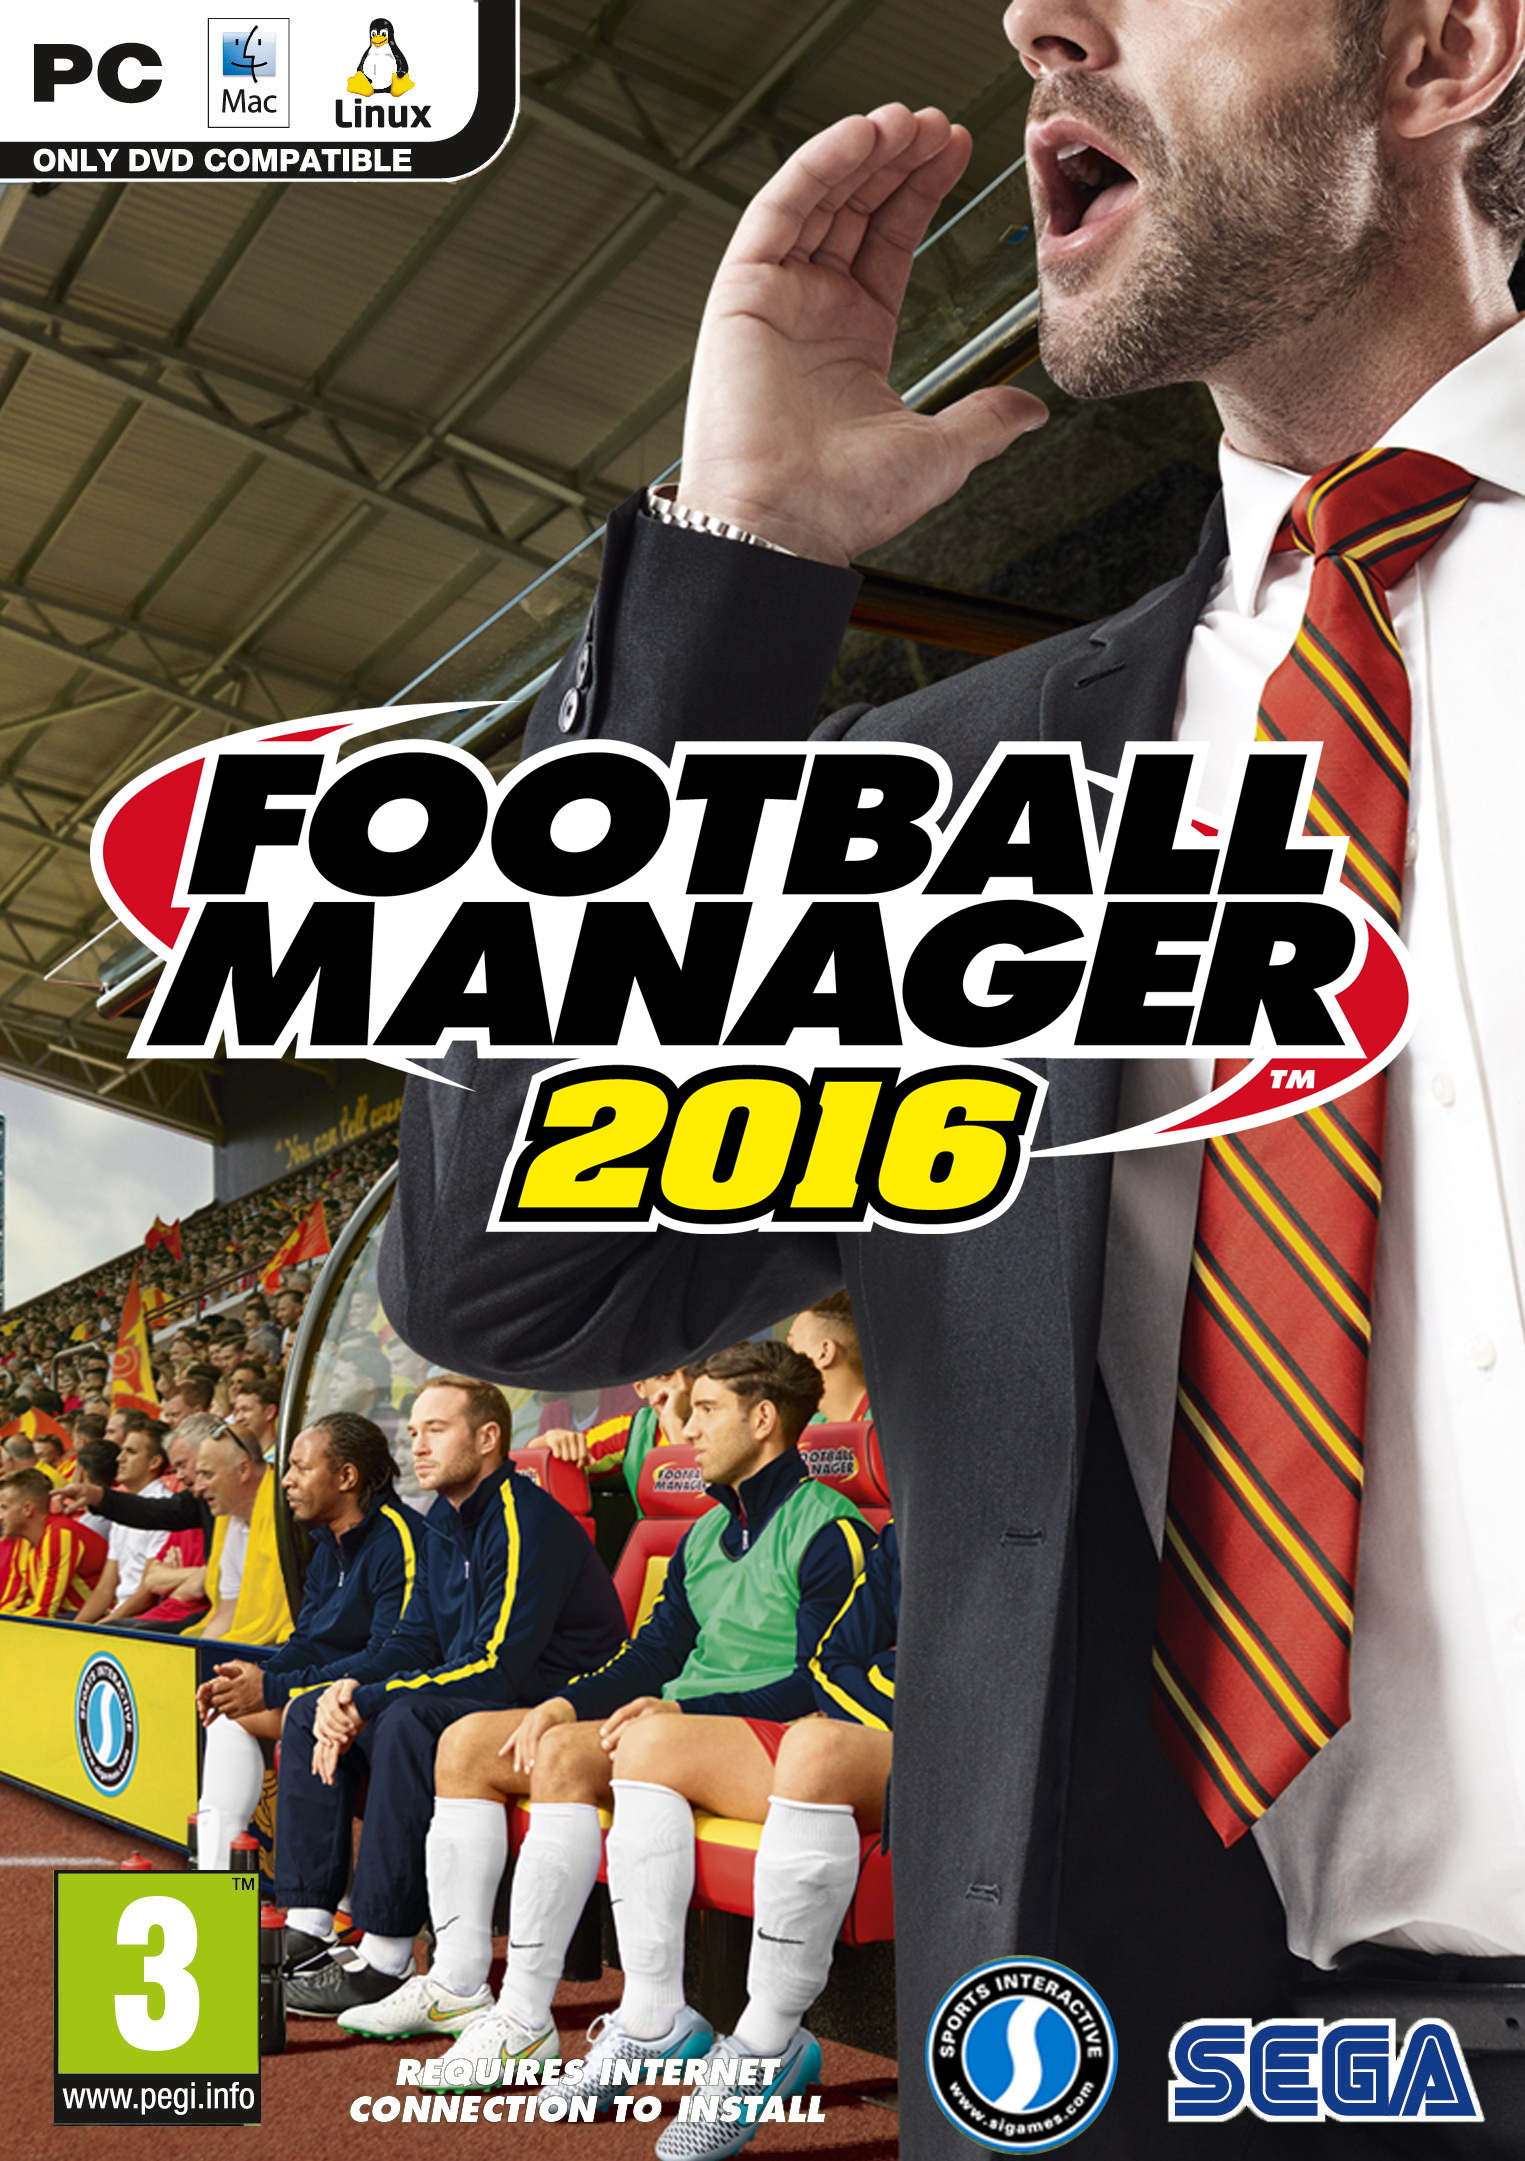 Football Manager 2016 Steam Account (Steam)